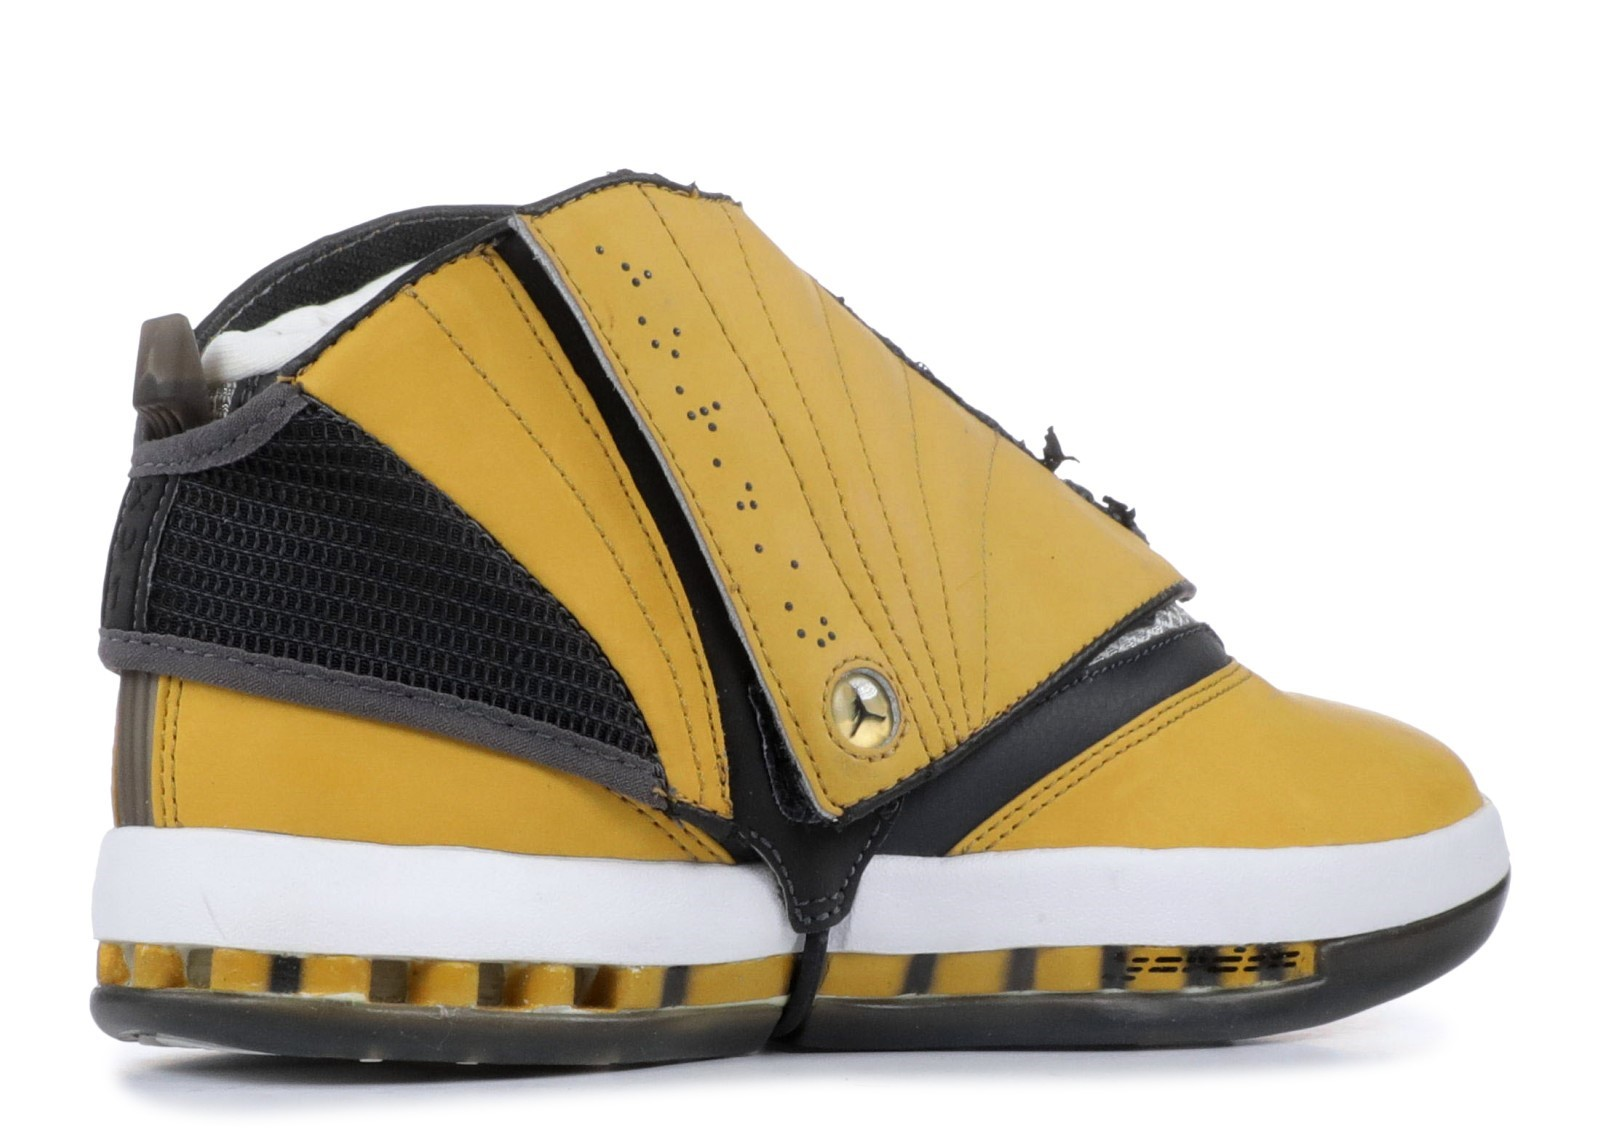 Meilleures Air Jordan 16 + Q Gs Marron (834030-701)